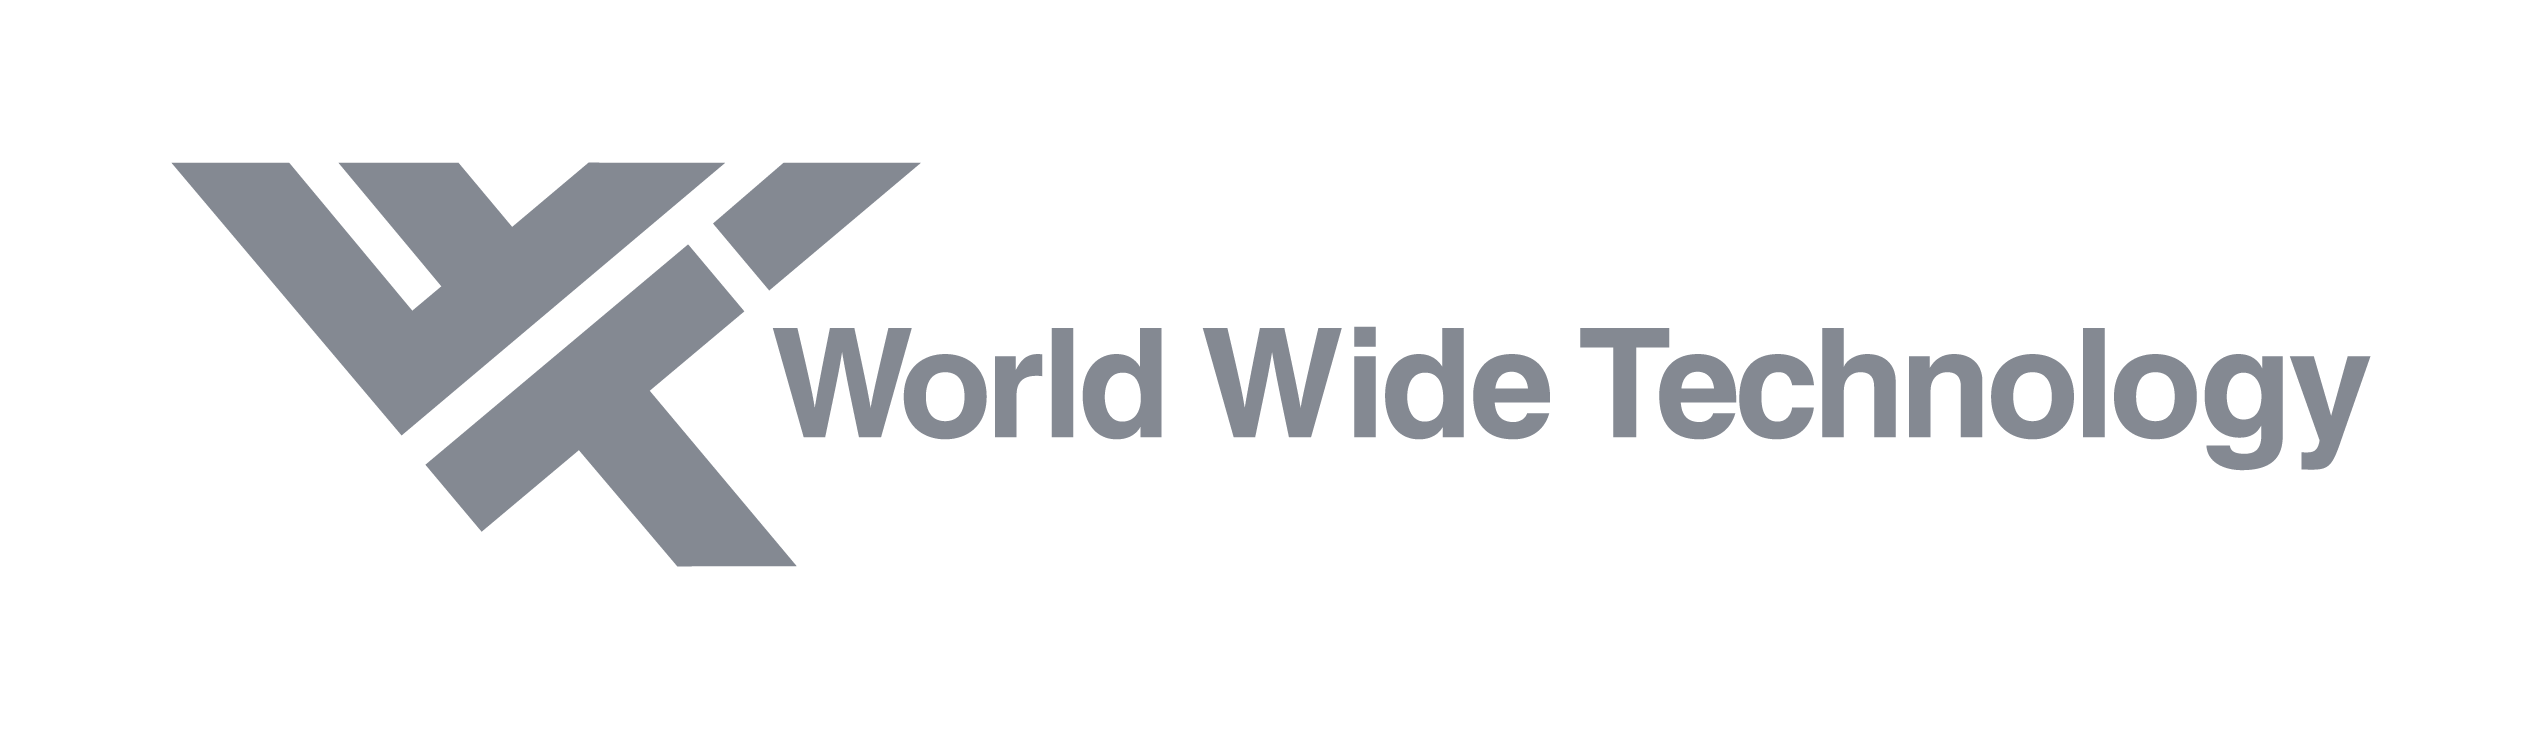 wwt-logo-color-horizontal-high.png